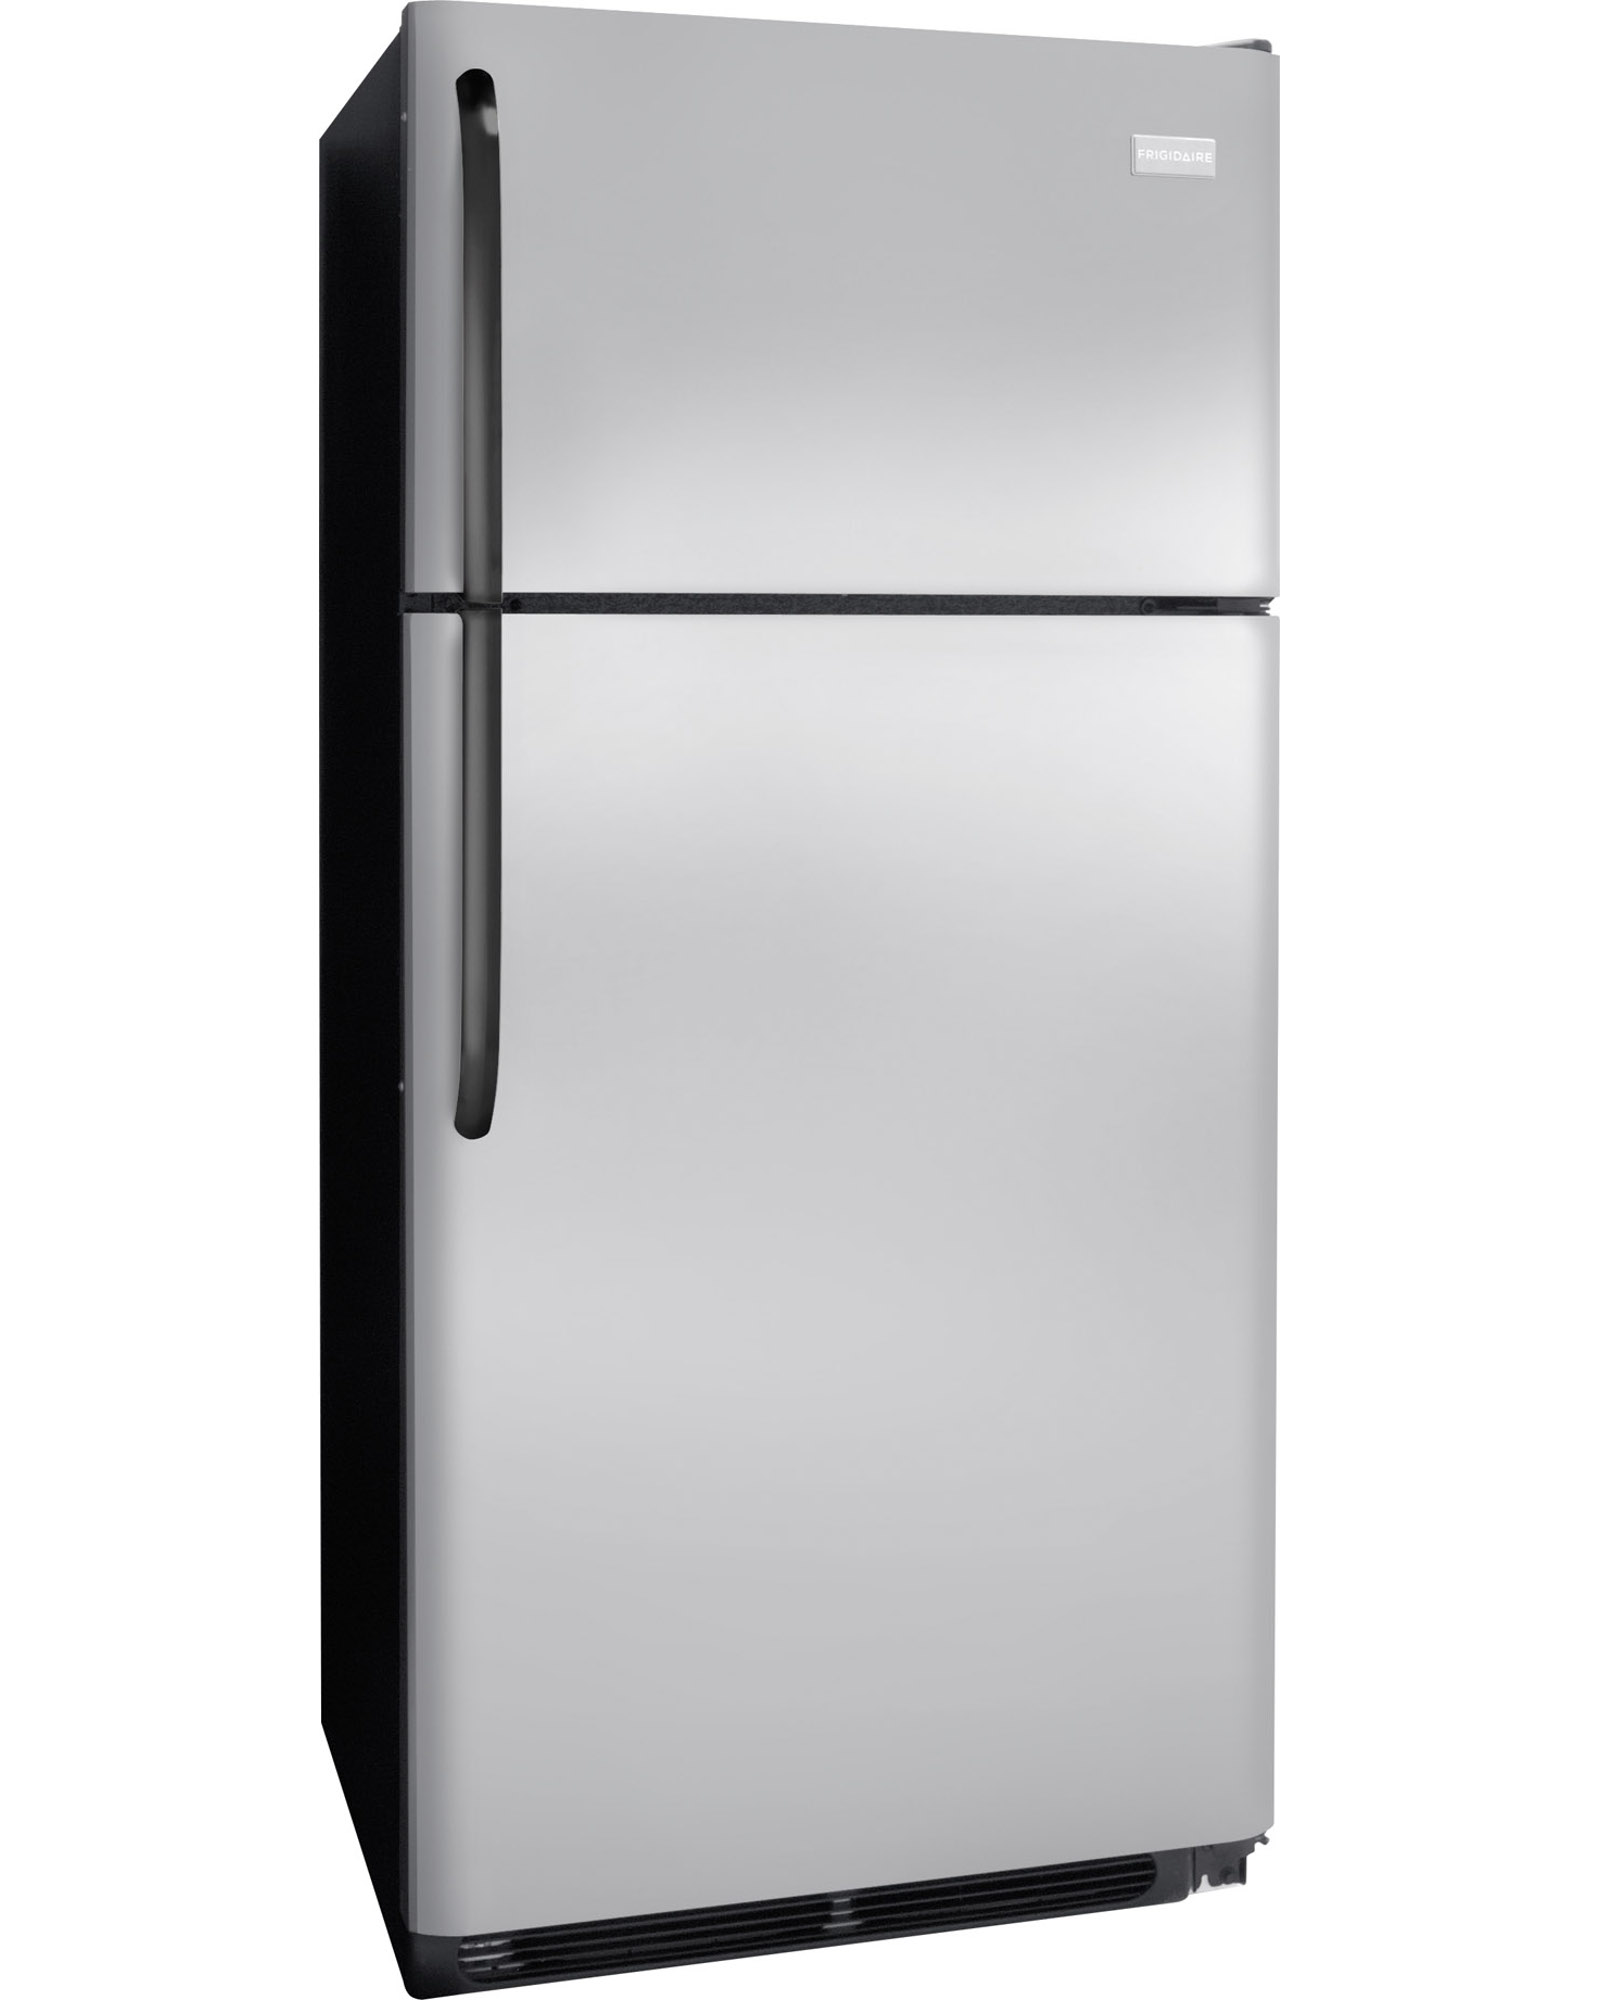 Frigidaire FFTR1814QS 18 cu. ft. Top Freezer Refrigerator - Stainless Steel